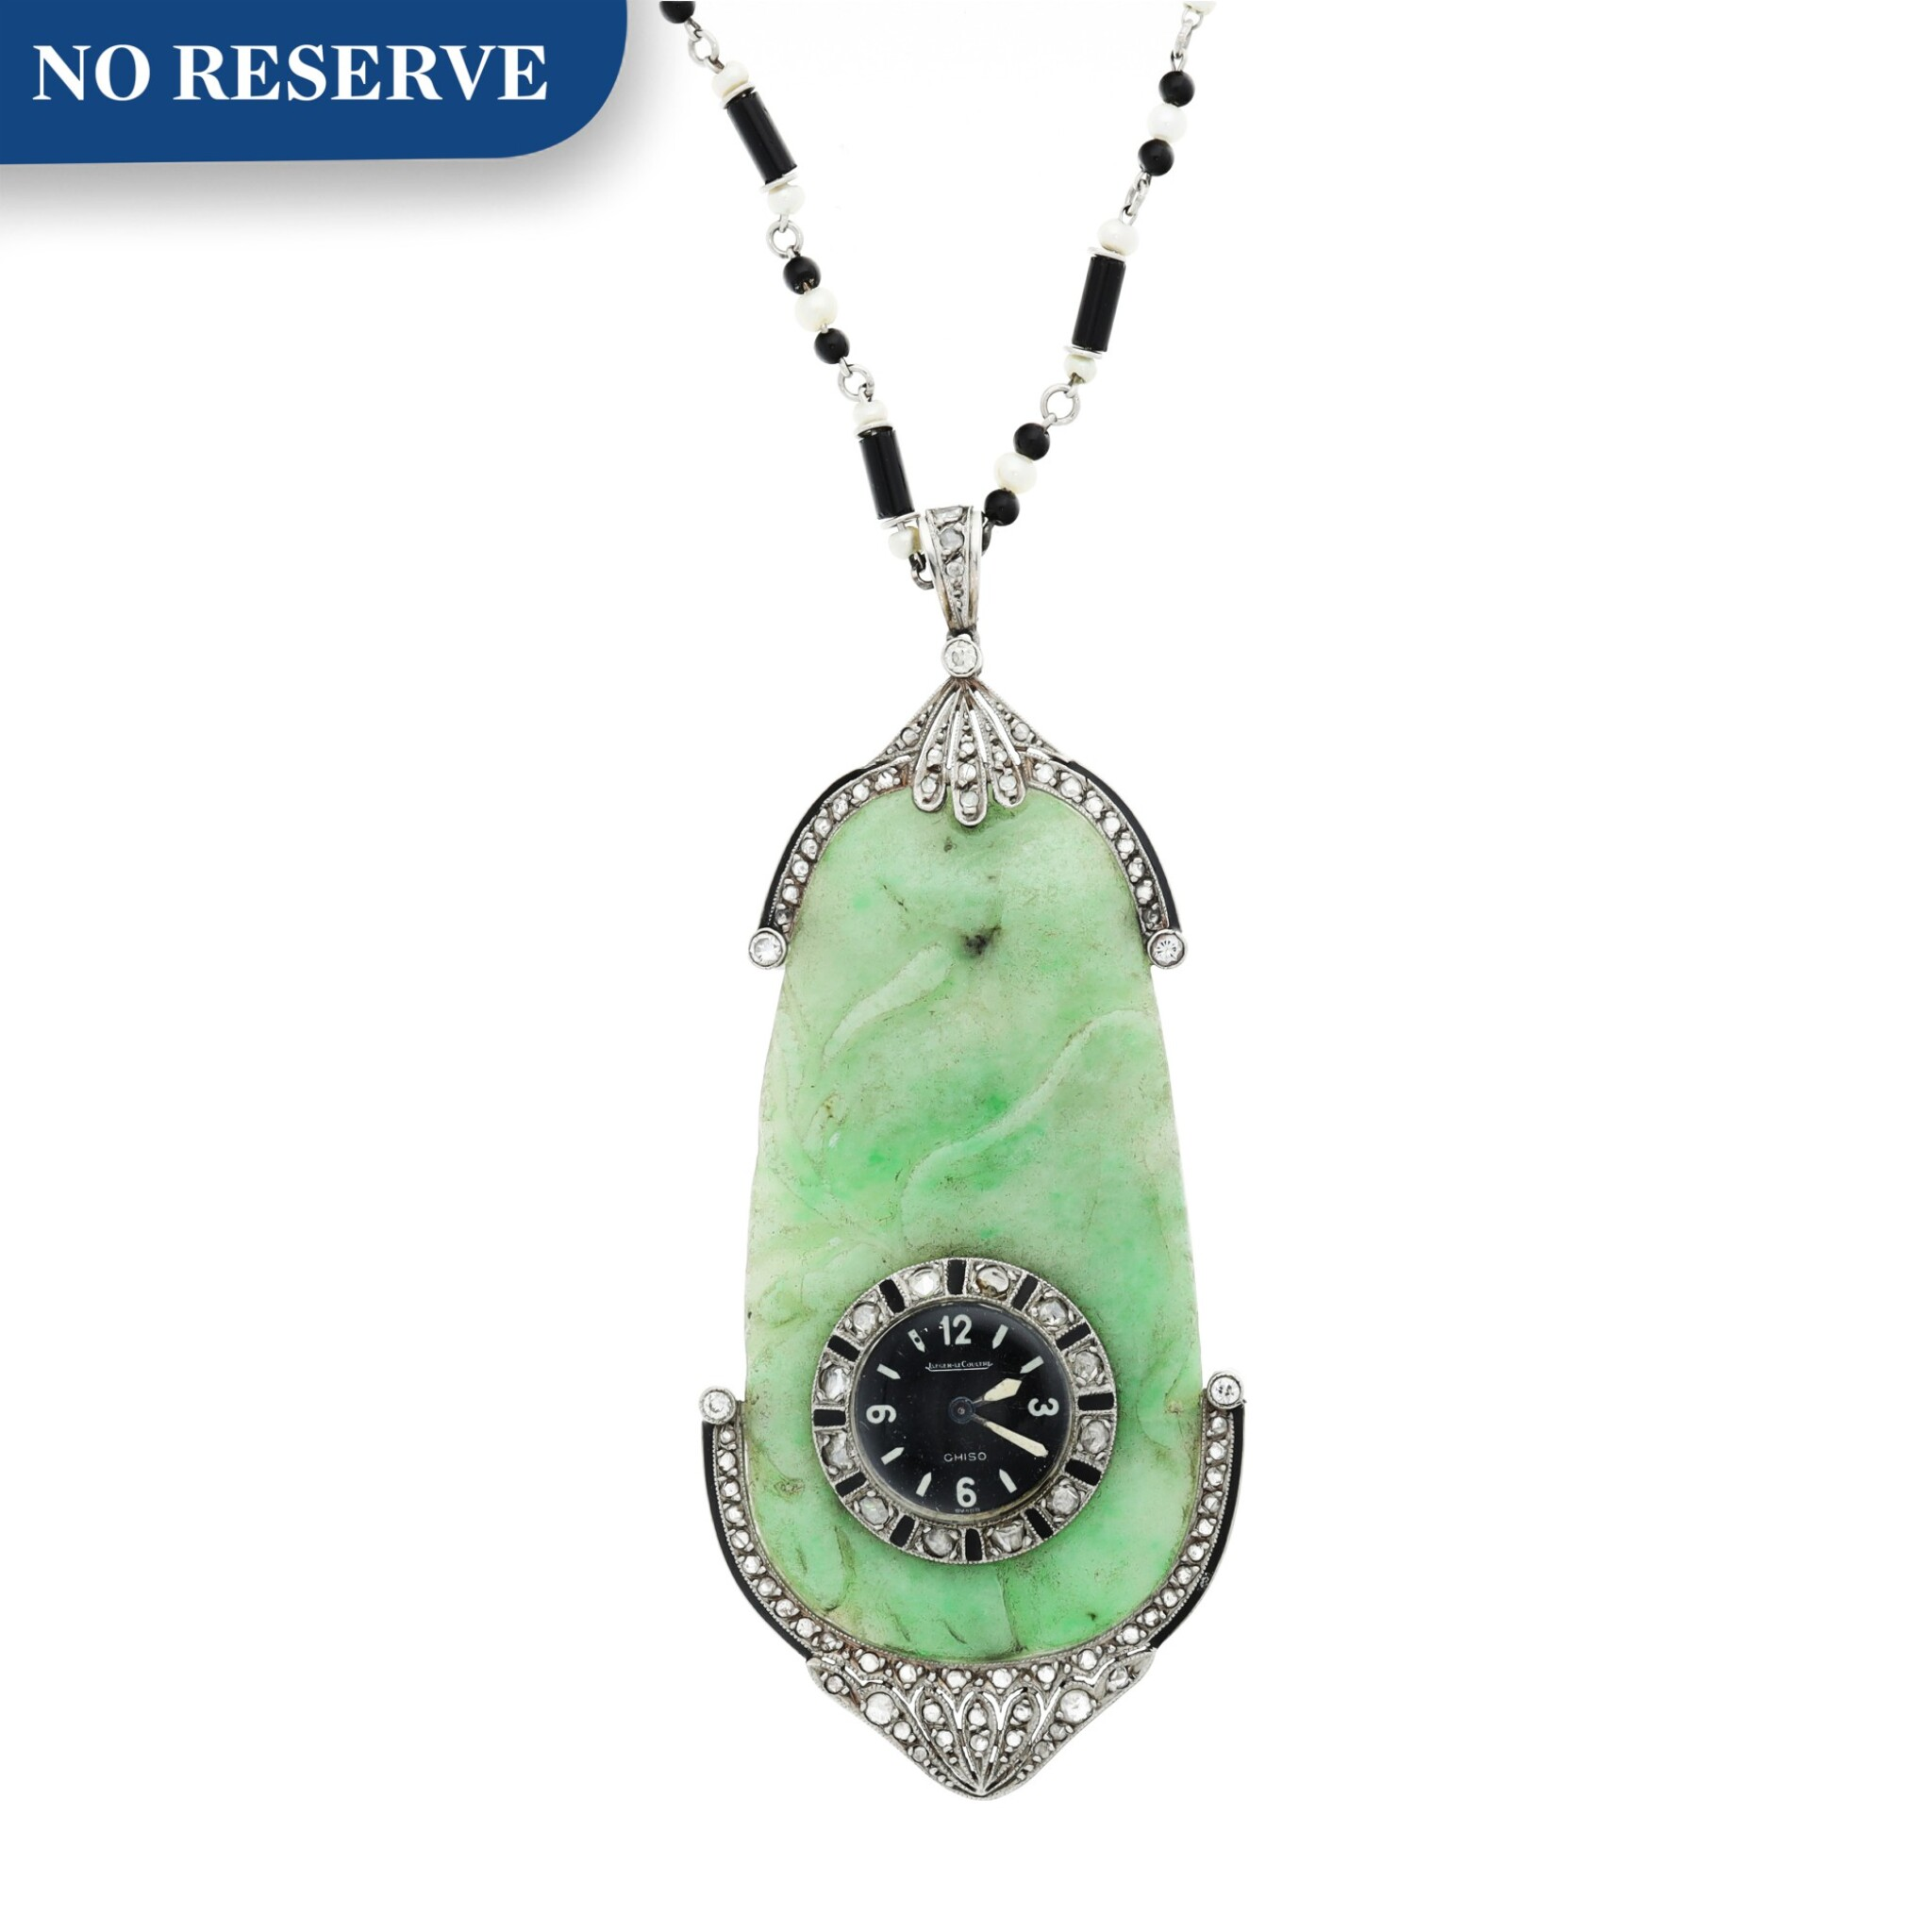 View full screen - View 1 of Lot 239. RETAILED BY GHISO: A JADE, PLATINUM, DIAMOND, AND ENAMEL PENDANT WATCH, CIRCA 1925.